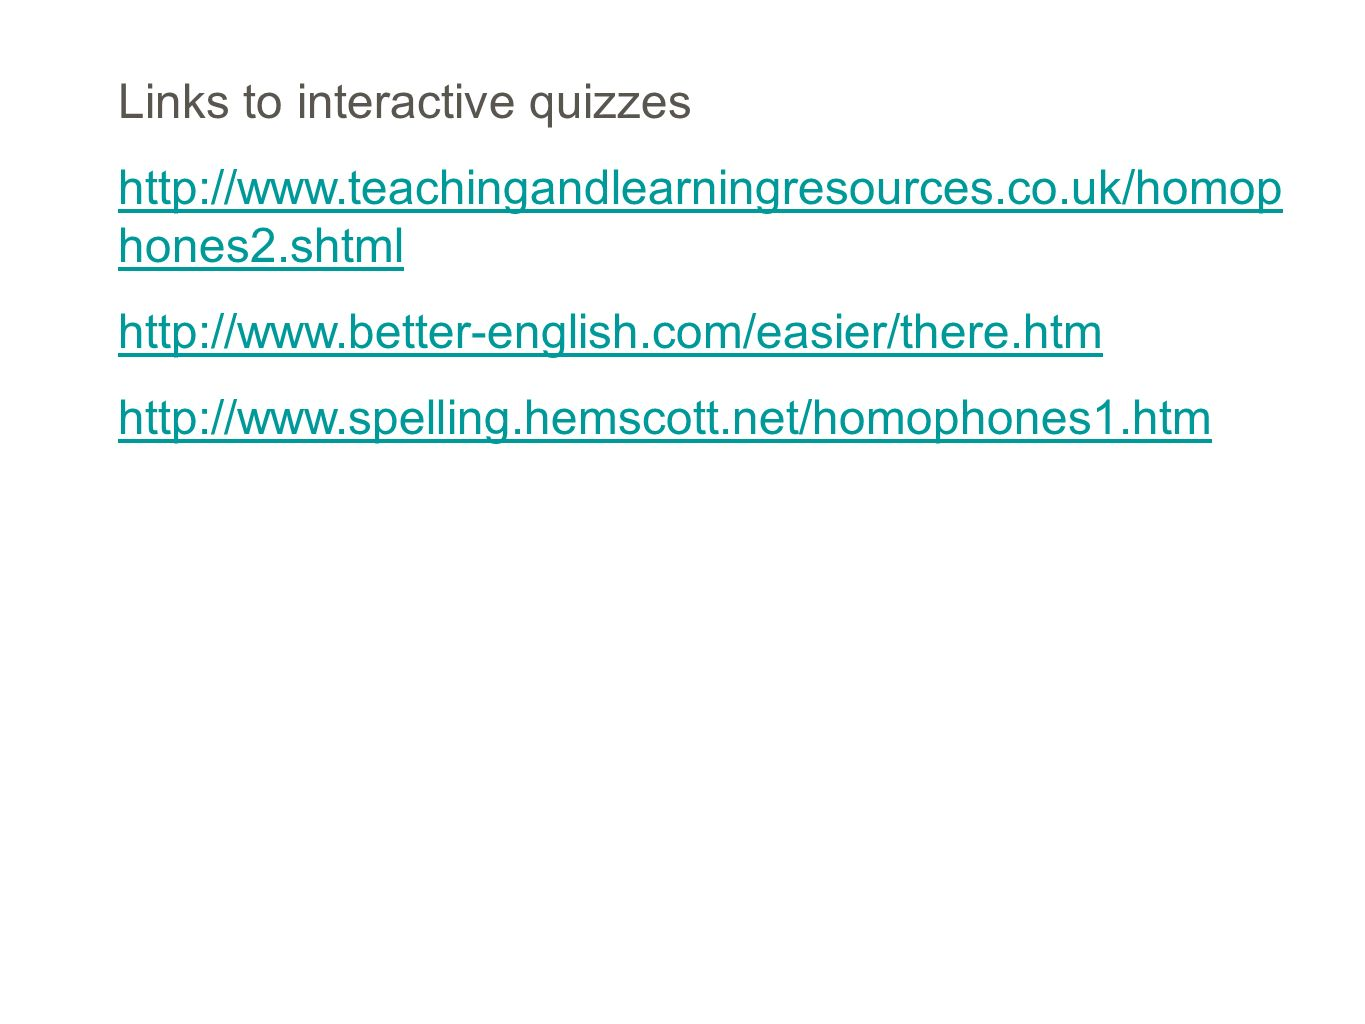 Links to interactive quizzes http://www.teachingandlearningresources.co.uk/homop hones2.shtml http://www.better-english.com/easier/there.htm http://ww